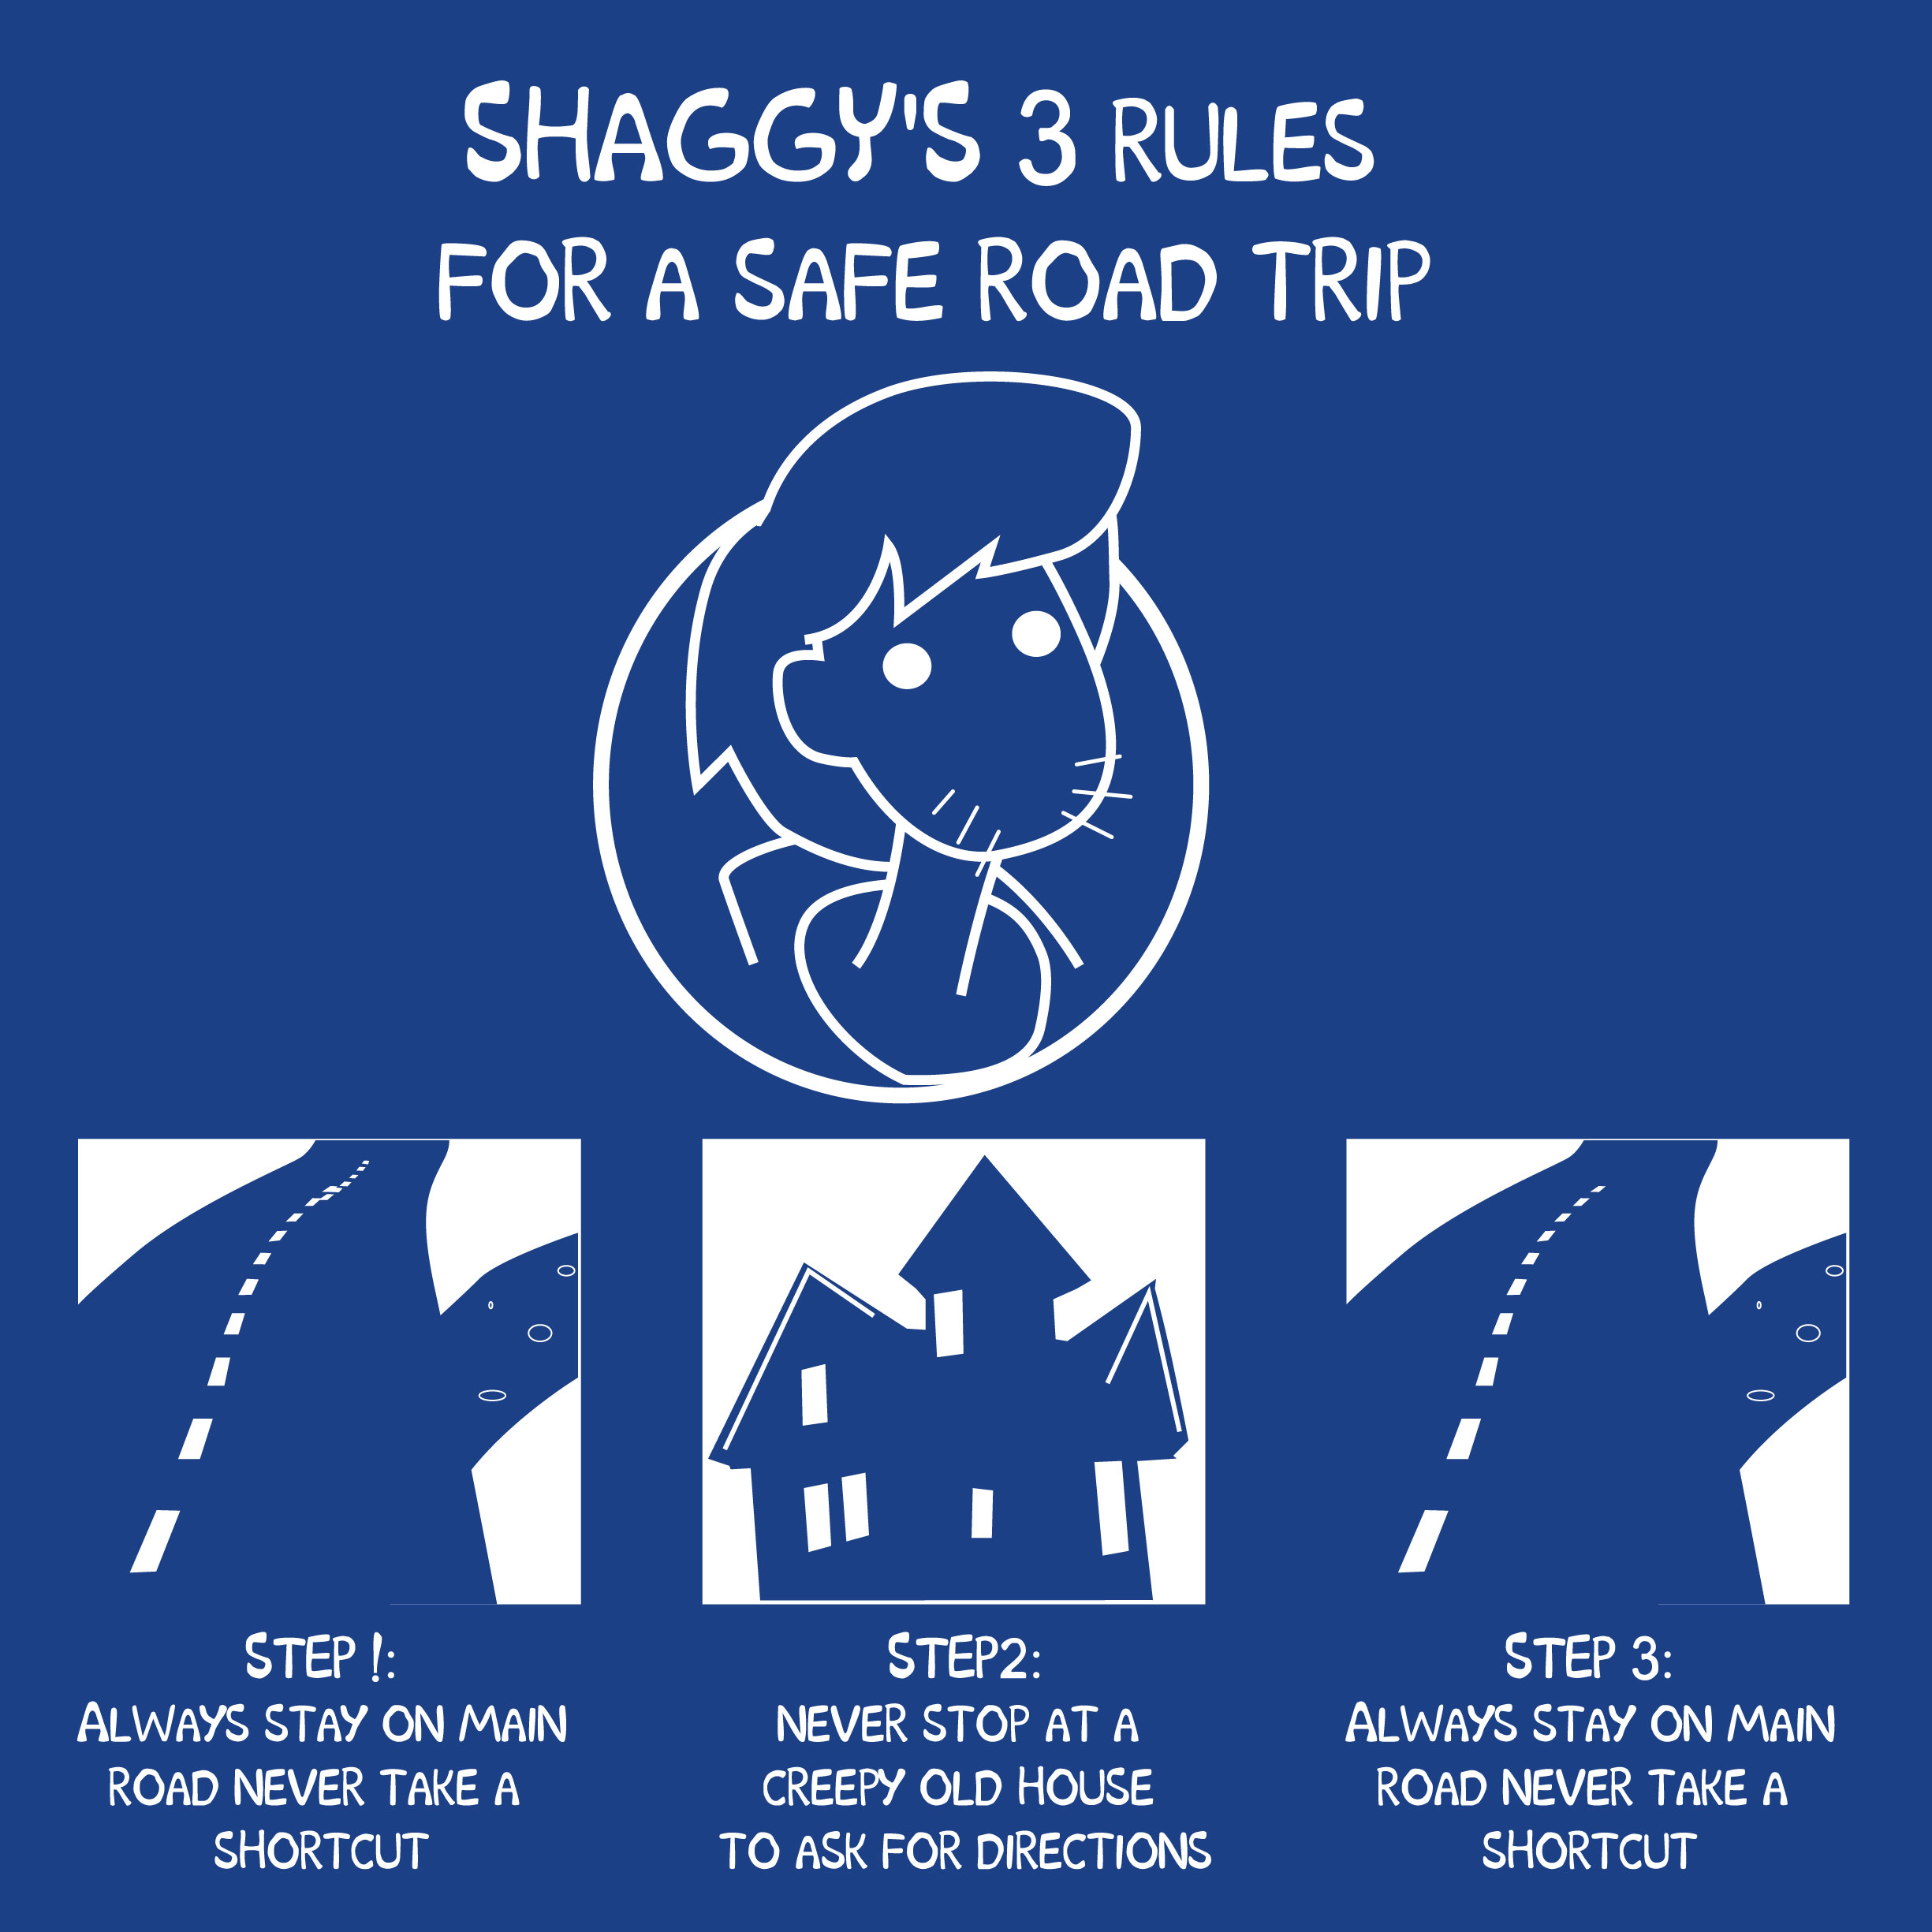 Shaggy Safe Trip Rules